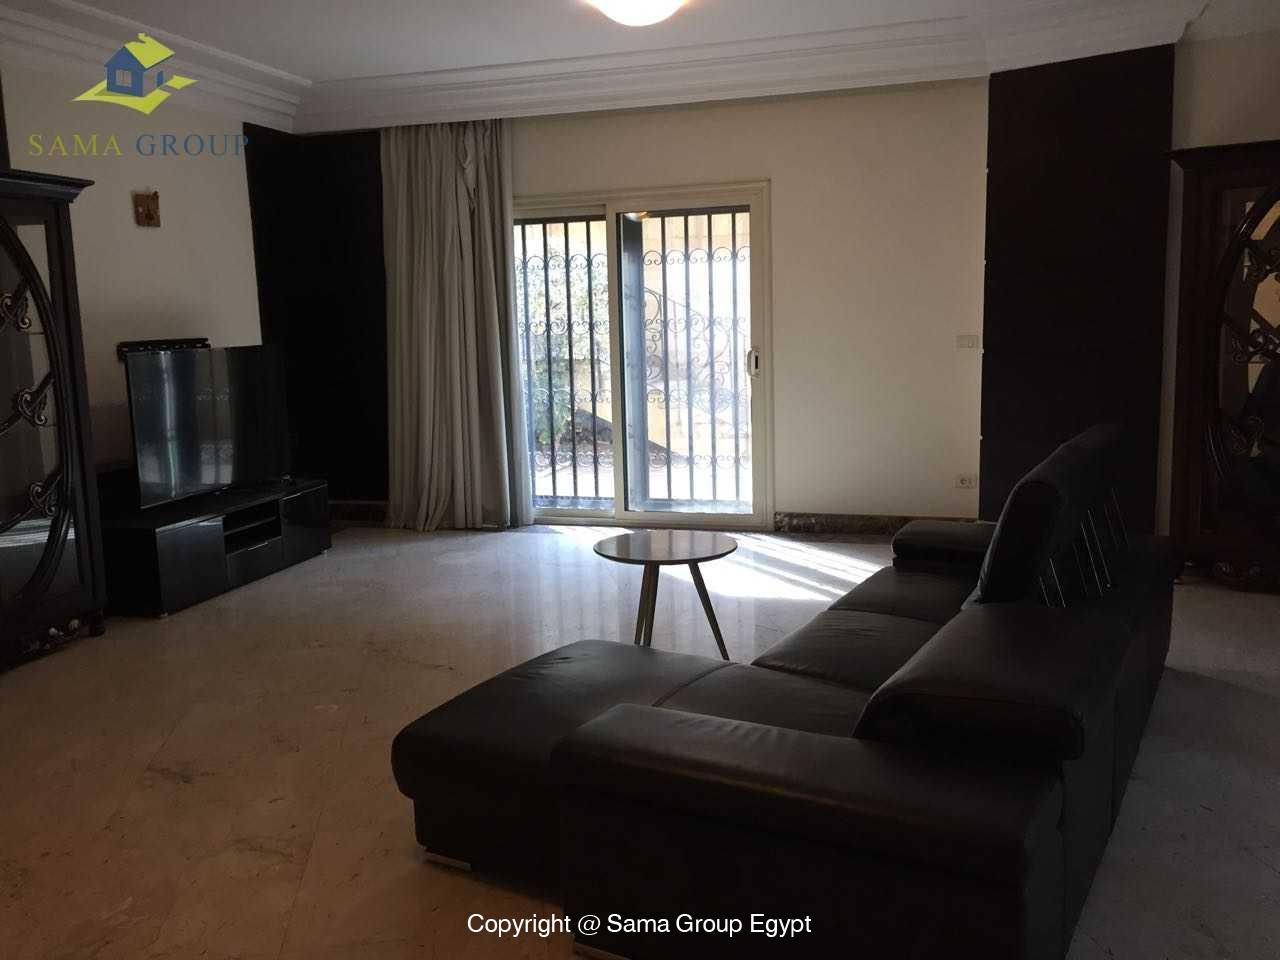 Ground Floor Duplex For Rent,Modern Furnished,Ground Floor - duplex NO #20